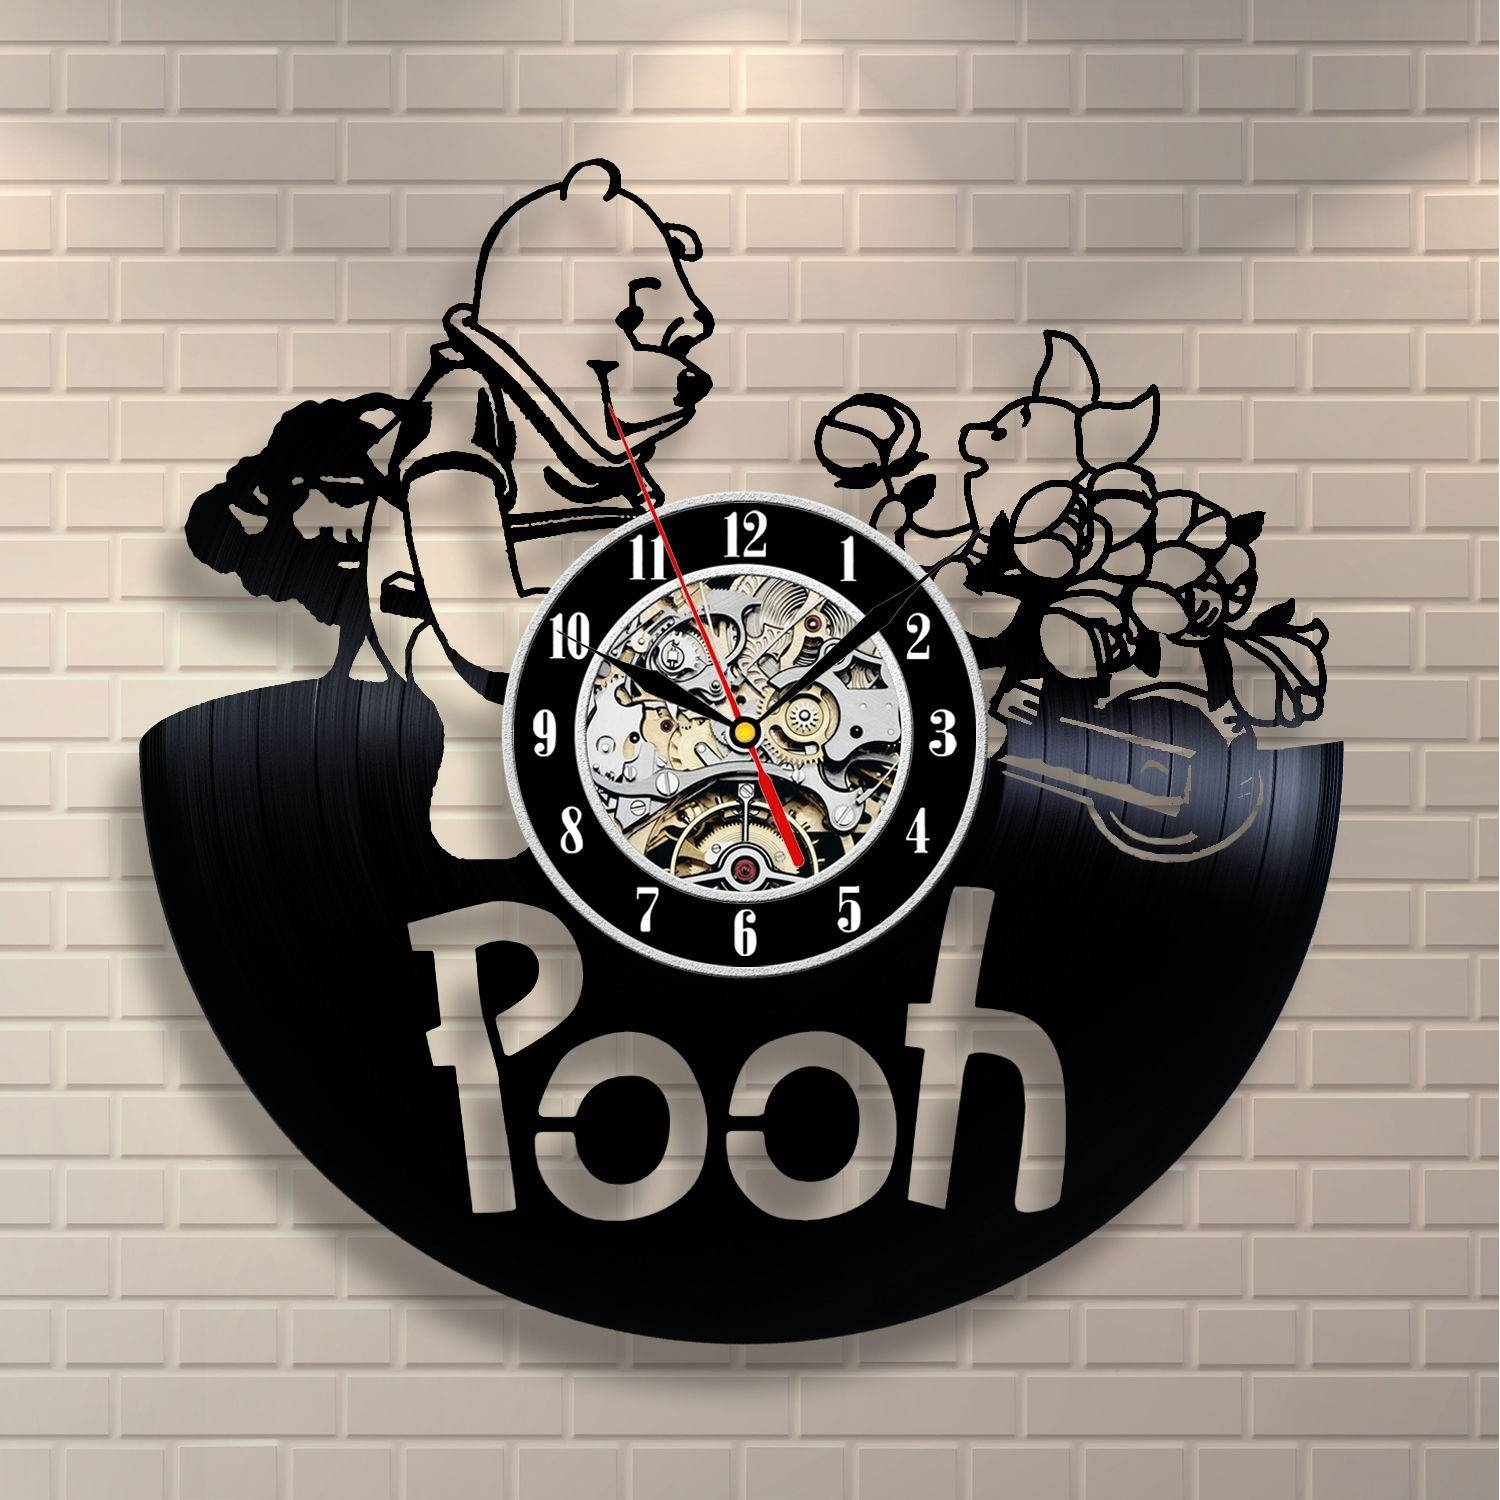 Winnie The Pooh Honey Art Vinyl Record Clock Wall Decor Home Throughout Latest Winnie The Pooh Vinyl Wall Art (View 10 of 20)